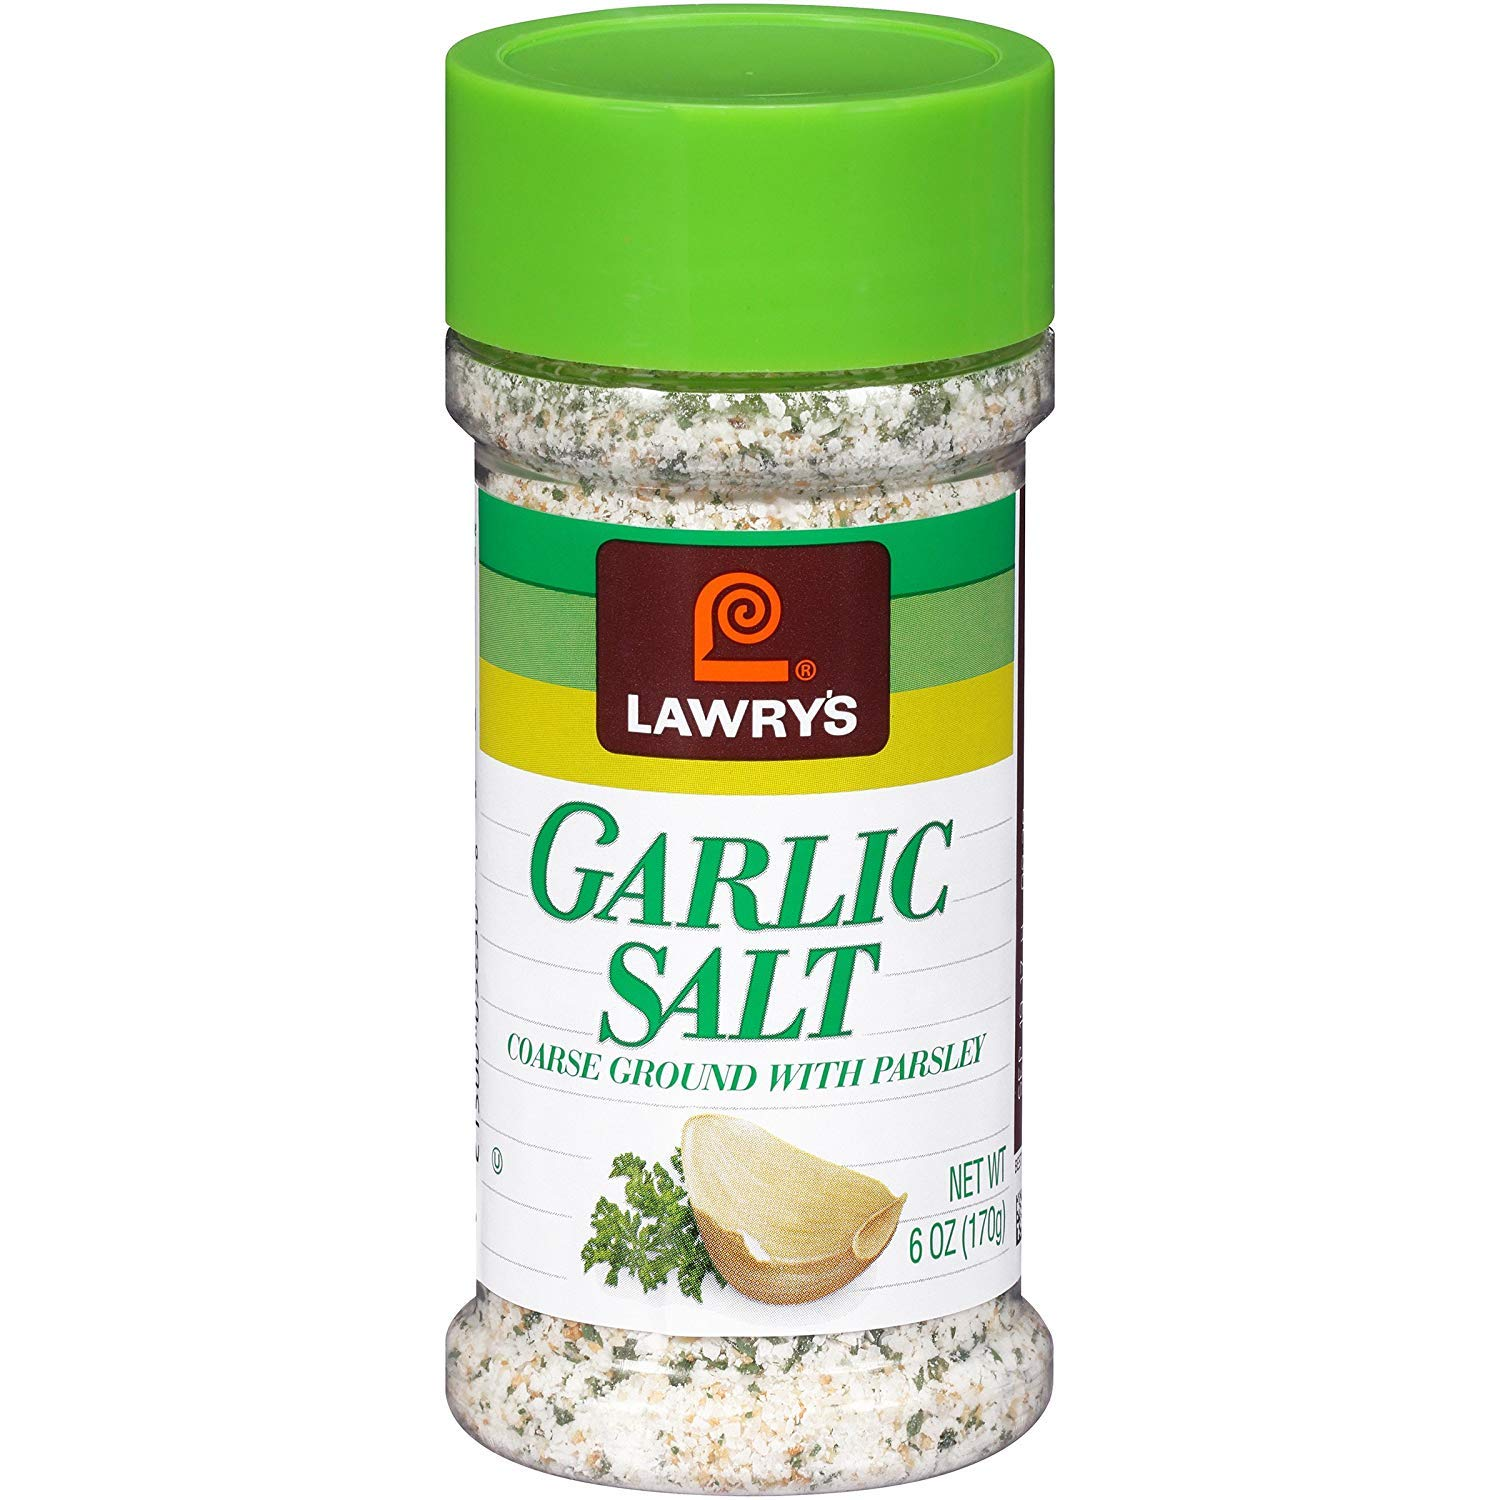 Lawrys Garlic Salt Coarse Ground with Parsley 170g Jar - Pack of 2